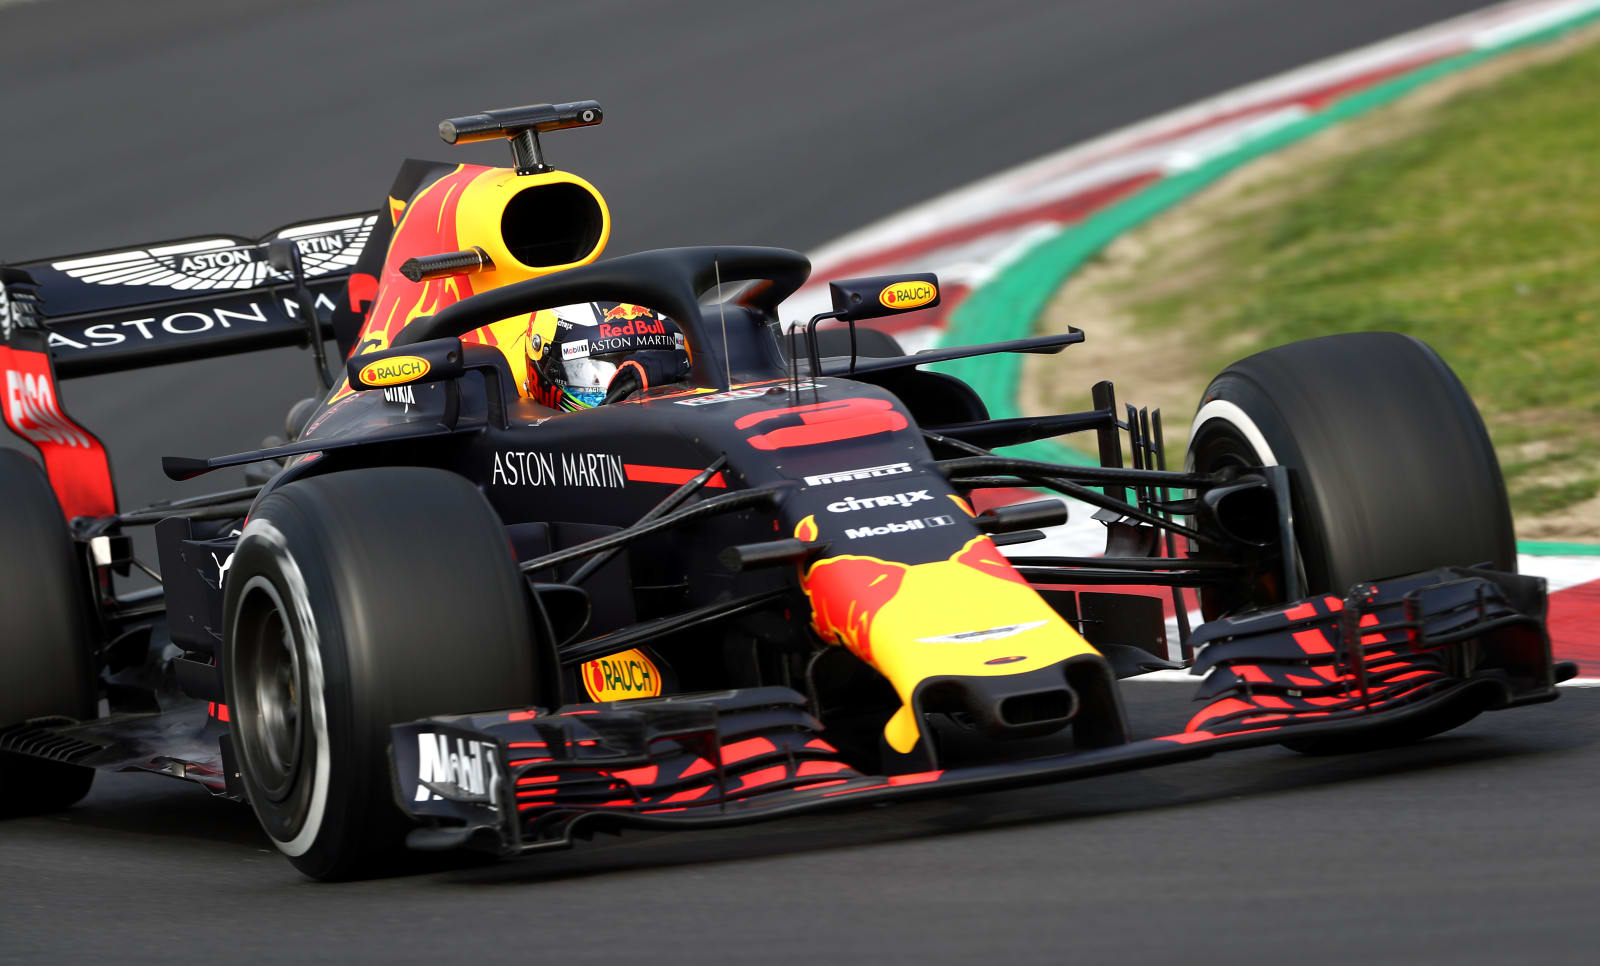 f1 39 s streaming service will be ready for march 39 s grand prix. Black Bedroom Furniture Sets. Home Design Ideas